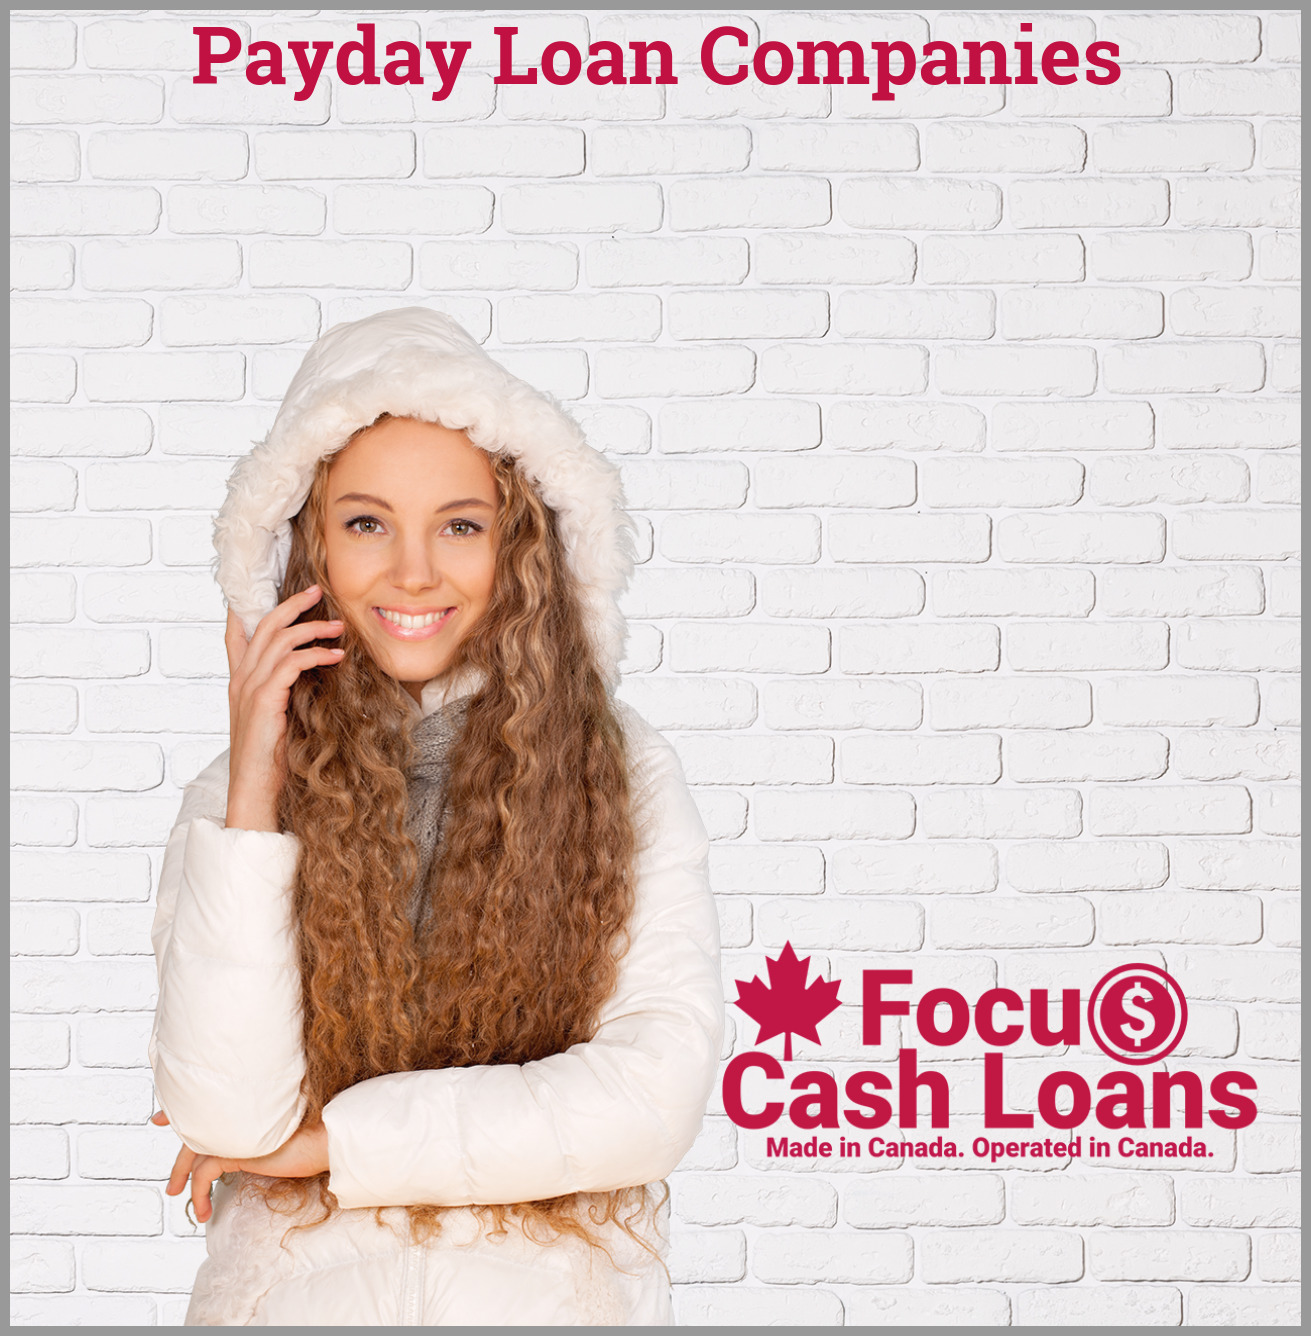 Picture of family that got - Bad Credit Loan People - Easy to borrow up to $1500 today.